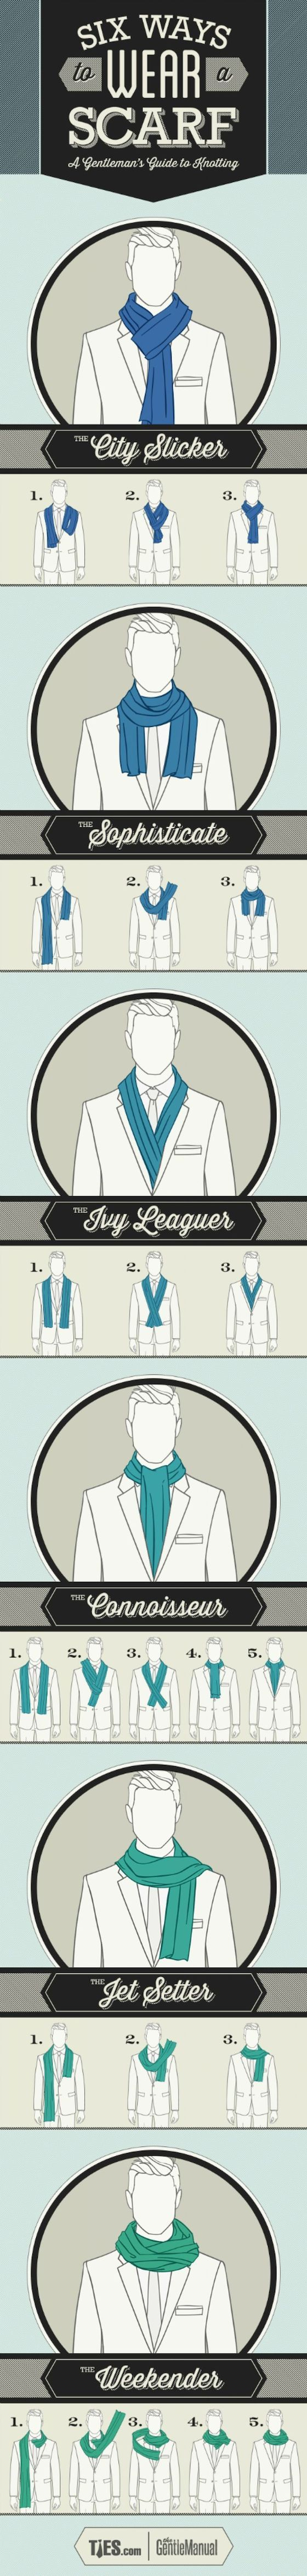 Men's Scarf Tutorial - Scarves for Men - Fall Fashion Trend - http://omglifestyle.com/scarves-for-men-fall-fashion-trend/